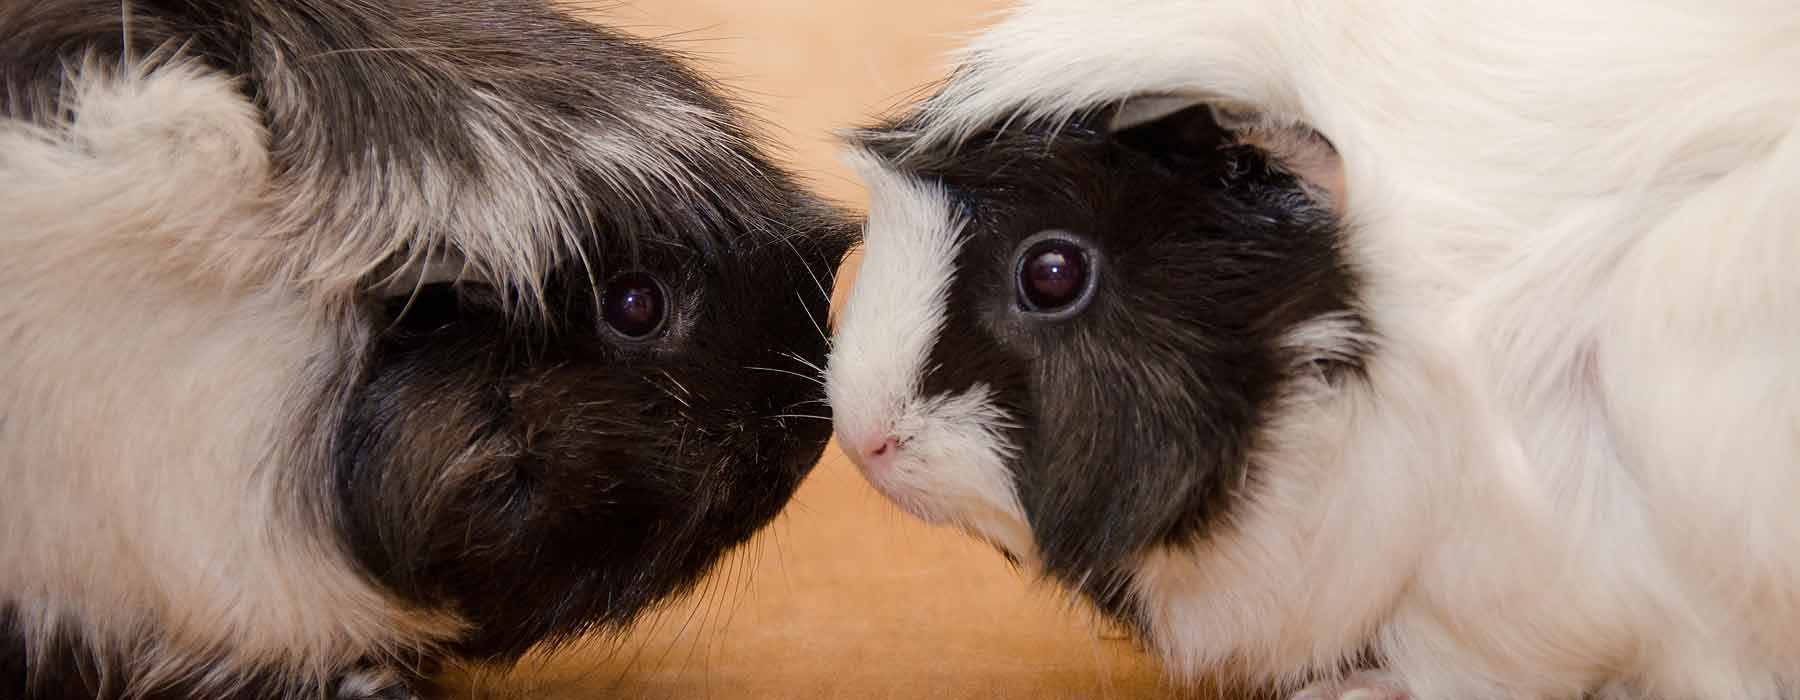 two guinea pigs nose to nose